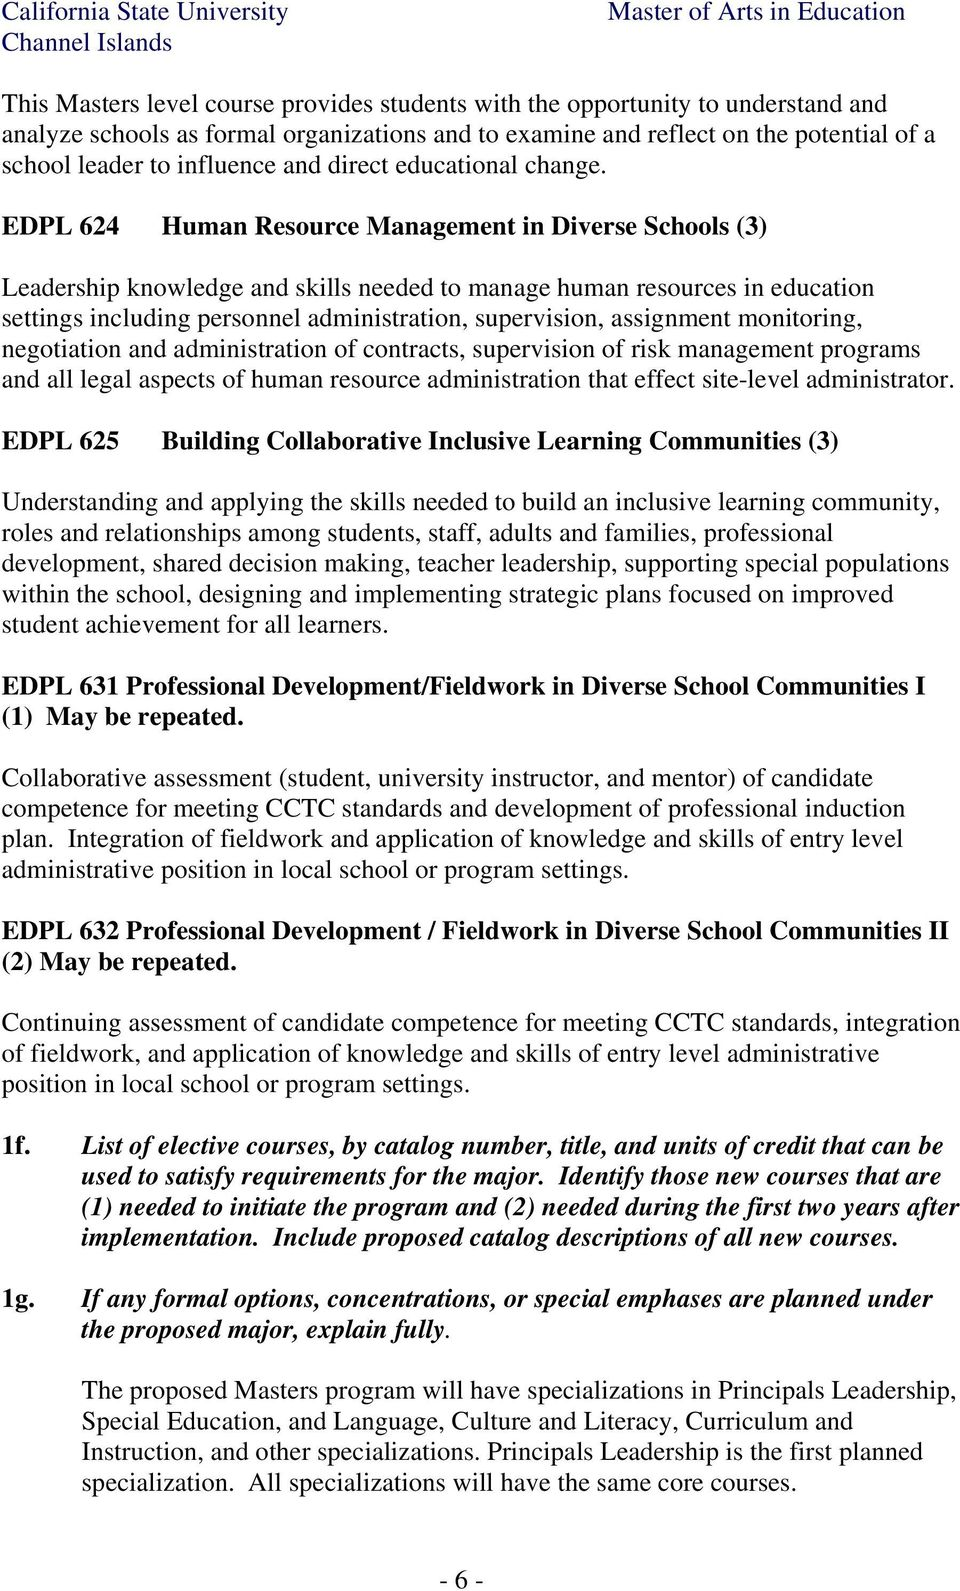 EDPL 624 Human Resource Management in Diverse Schools (3) Leadership knowledge and skills needed to manage human resources in education settings including personnel administration, supervision,